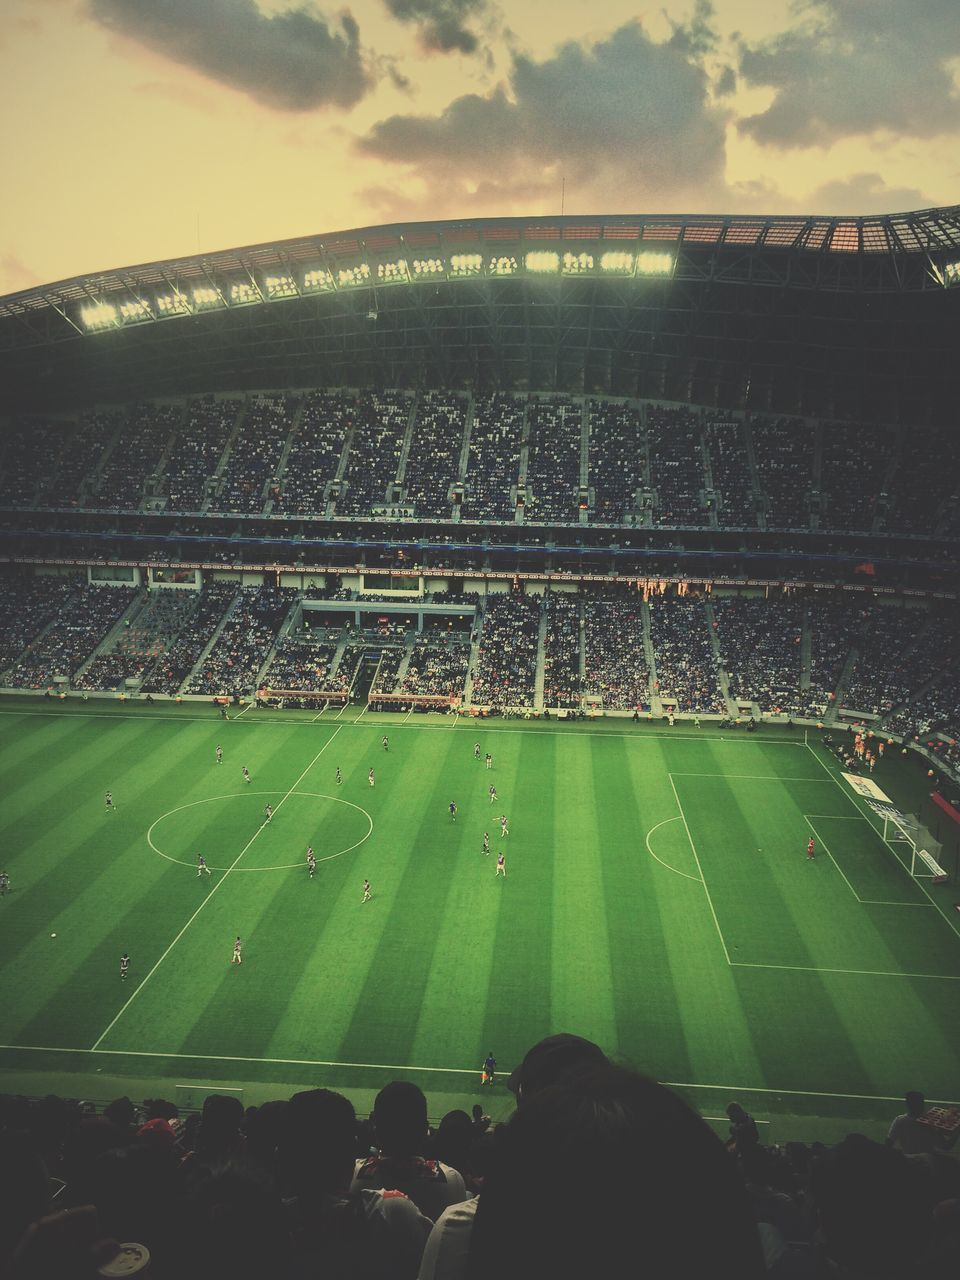 stadium, sport, crowd, spectator, soccer, audience, large group of people, grass, fan - enthusiast, football, cheering, sports team, event, outdoors, togetherness, playing, team sport, excitement, sports venue, competition, competitive sport, sky, soccer field, real people, night, american football - sport, applauding, people